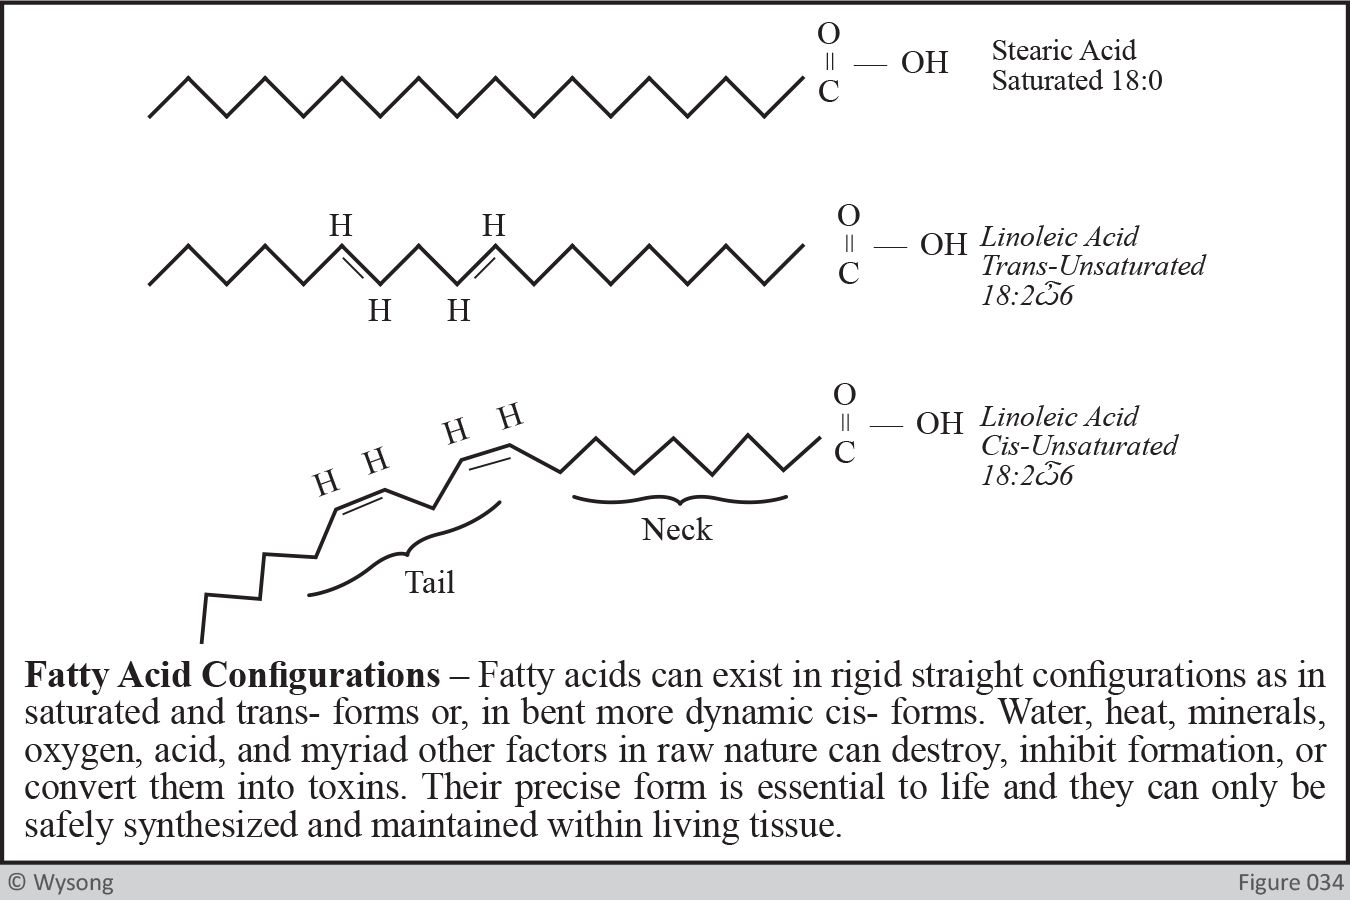 Fatty Acid Configurations